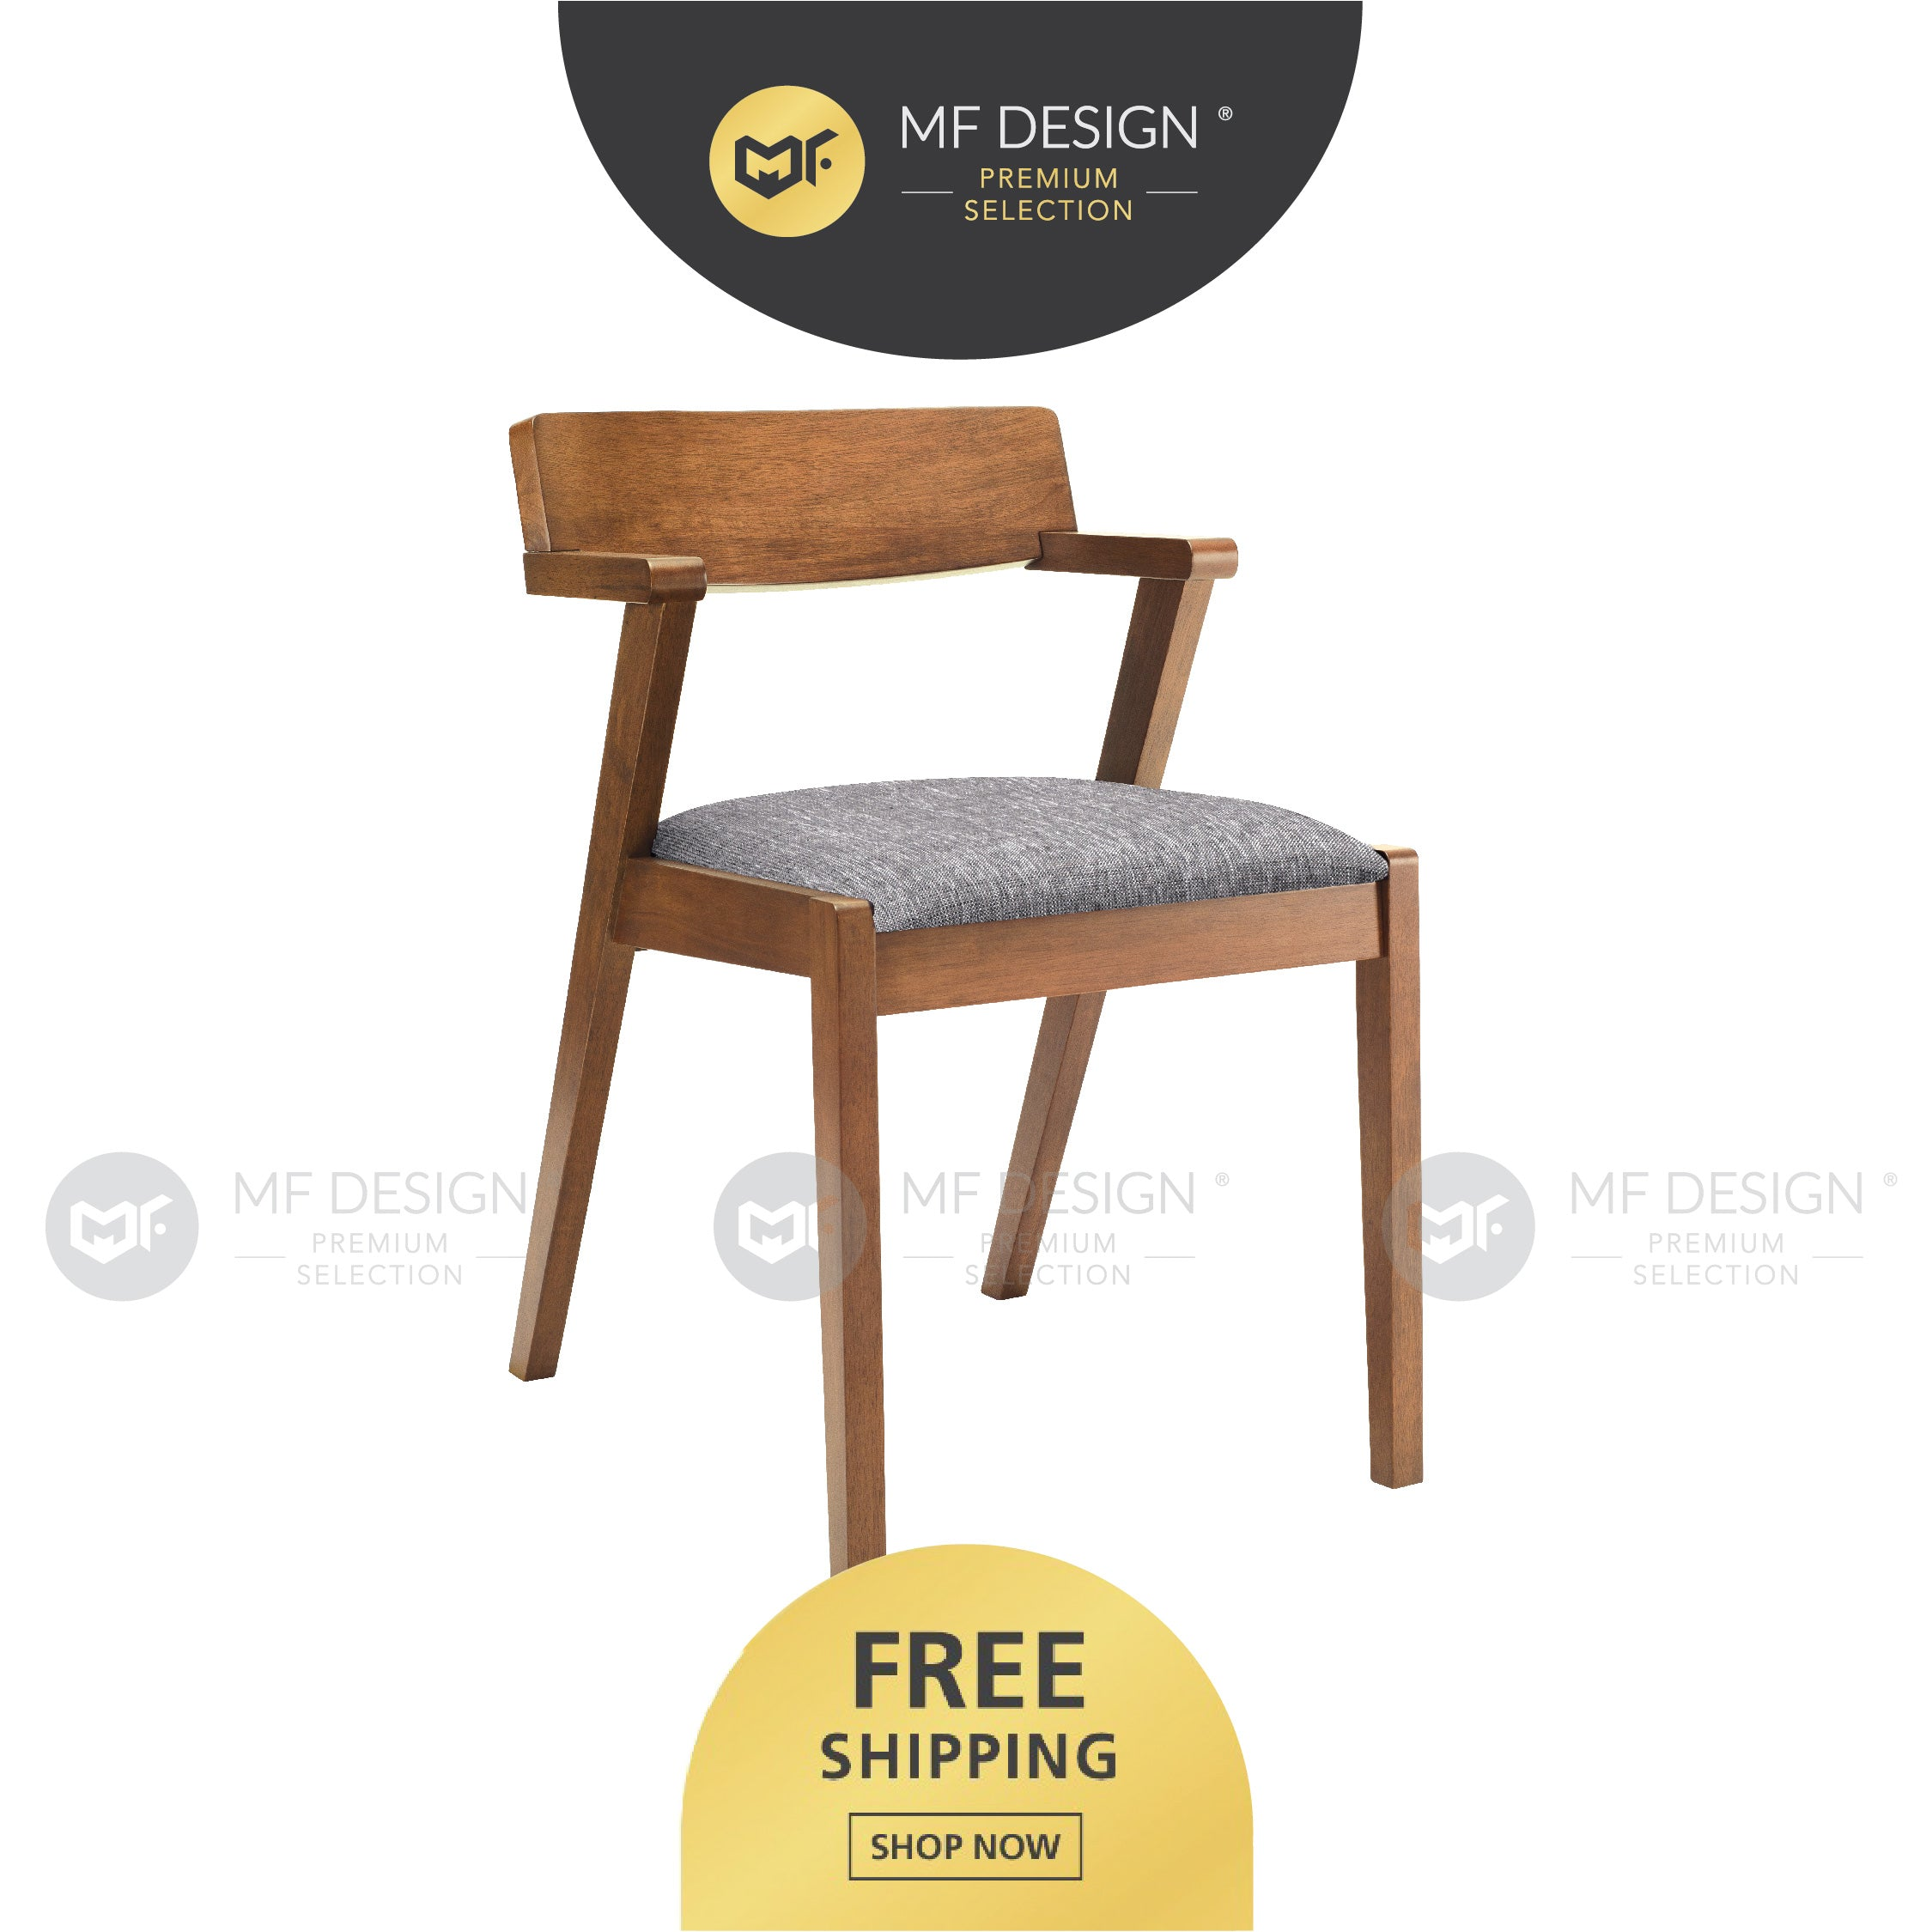 MFD Premium Zoe Dining Chair / Wooden Chair / Solid Rubber Wood / Kerusi Makan Kayu Getah / Living Room / Scandinavian